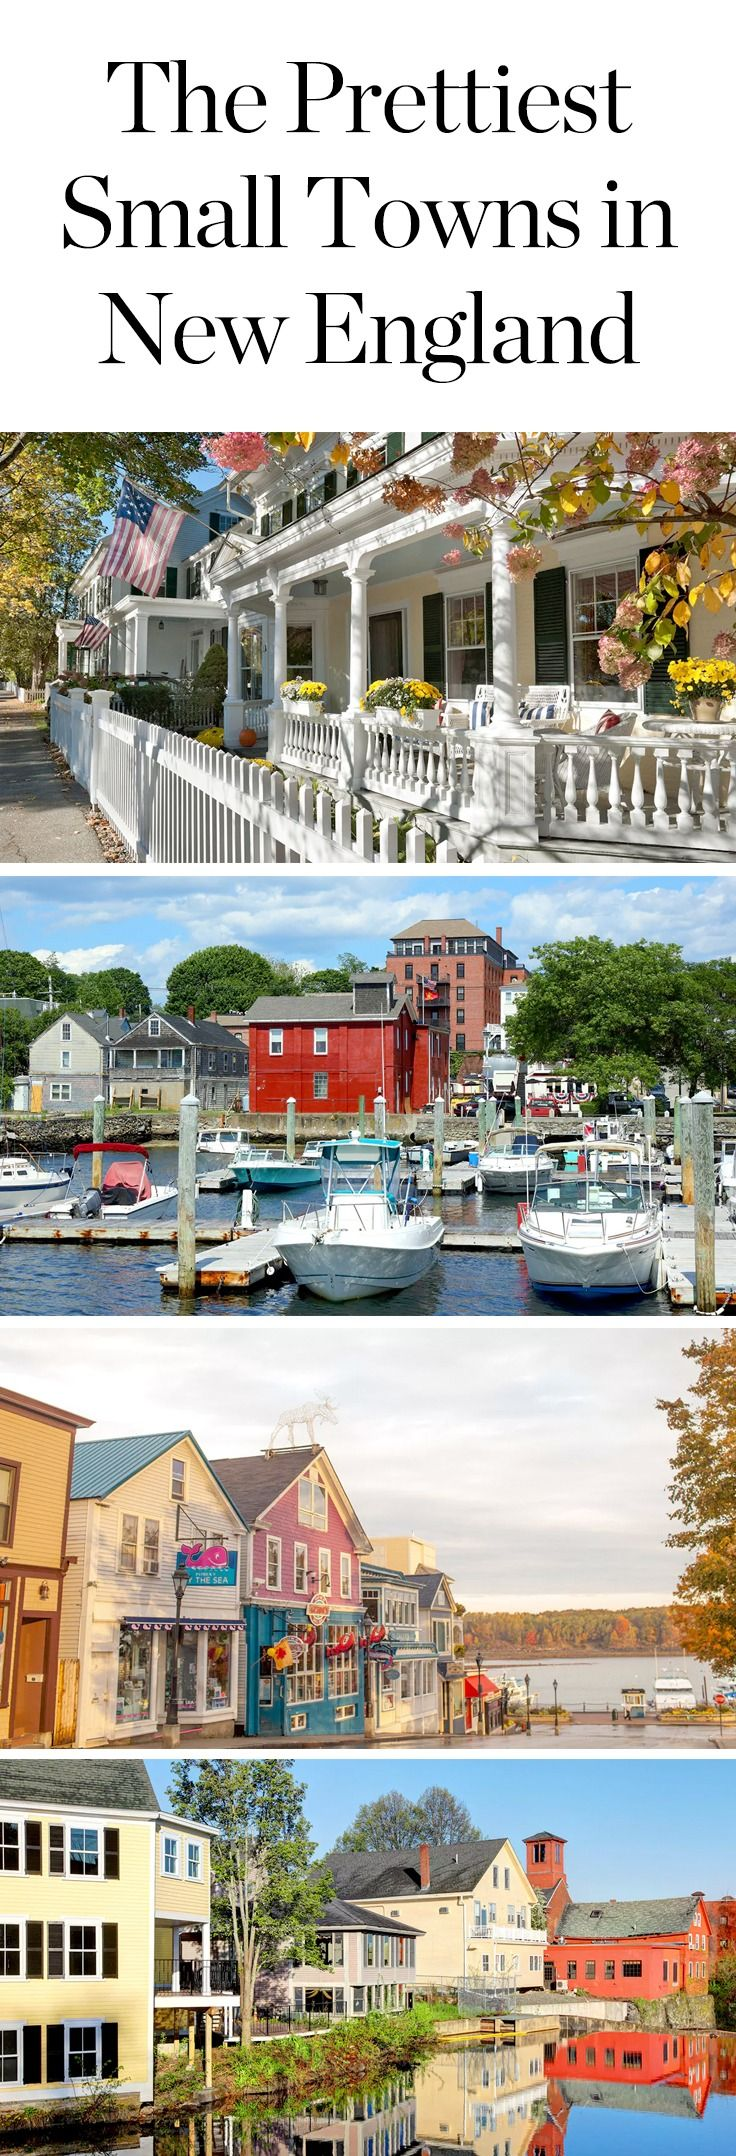 The Prettiest Small Towns in New England | Wanderlust, Small towns ...